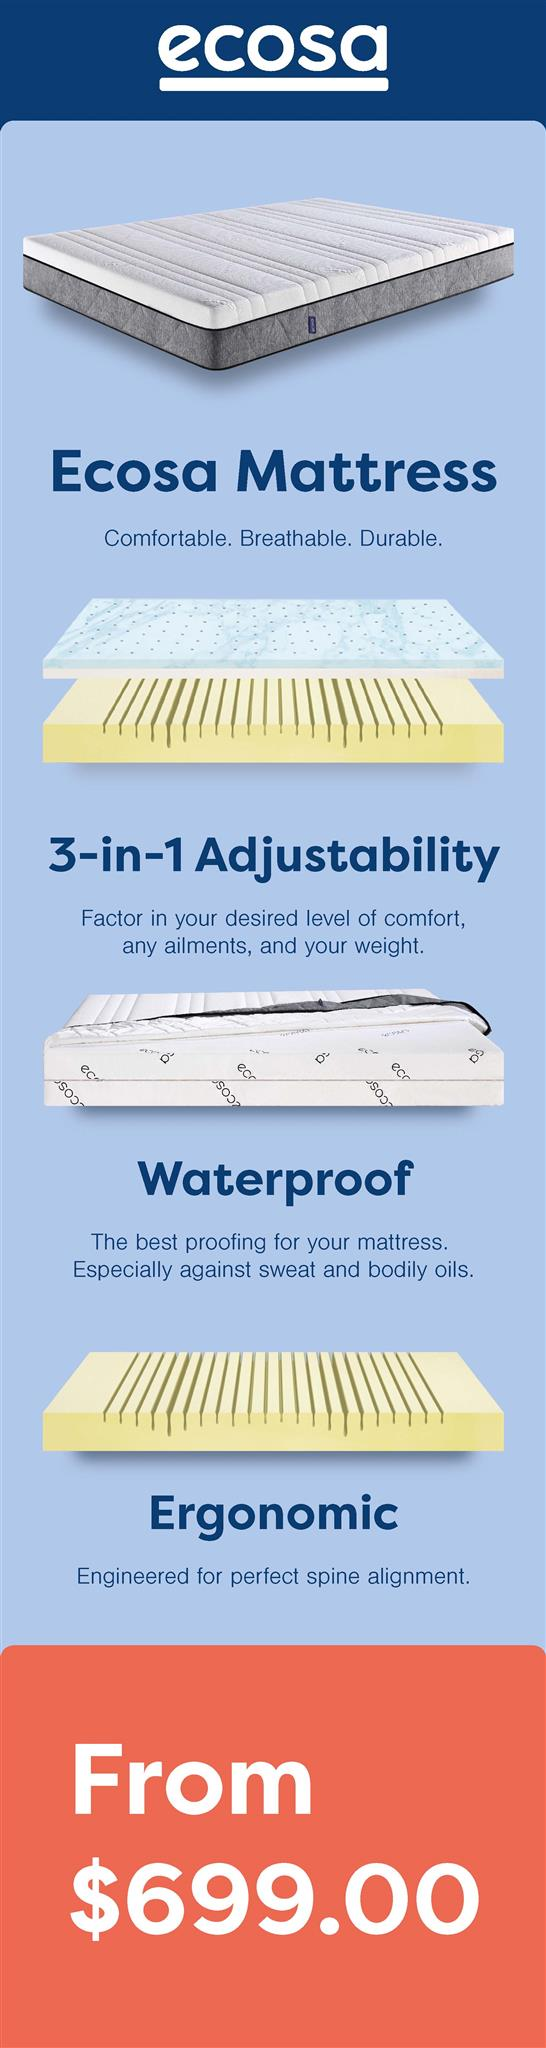 ecosa mattress height